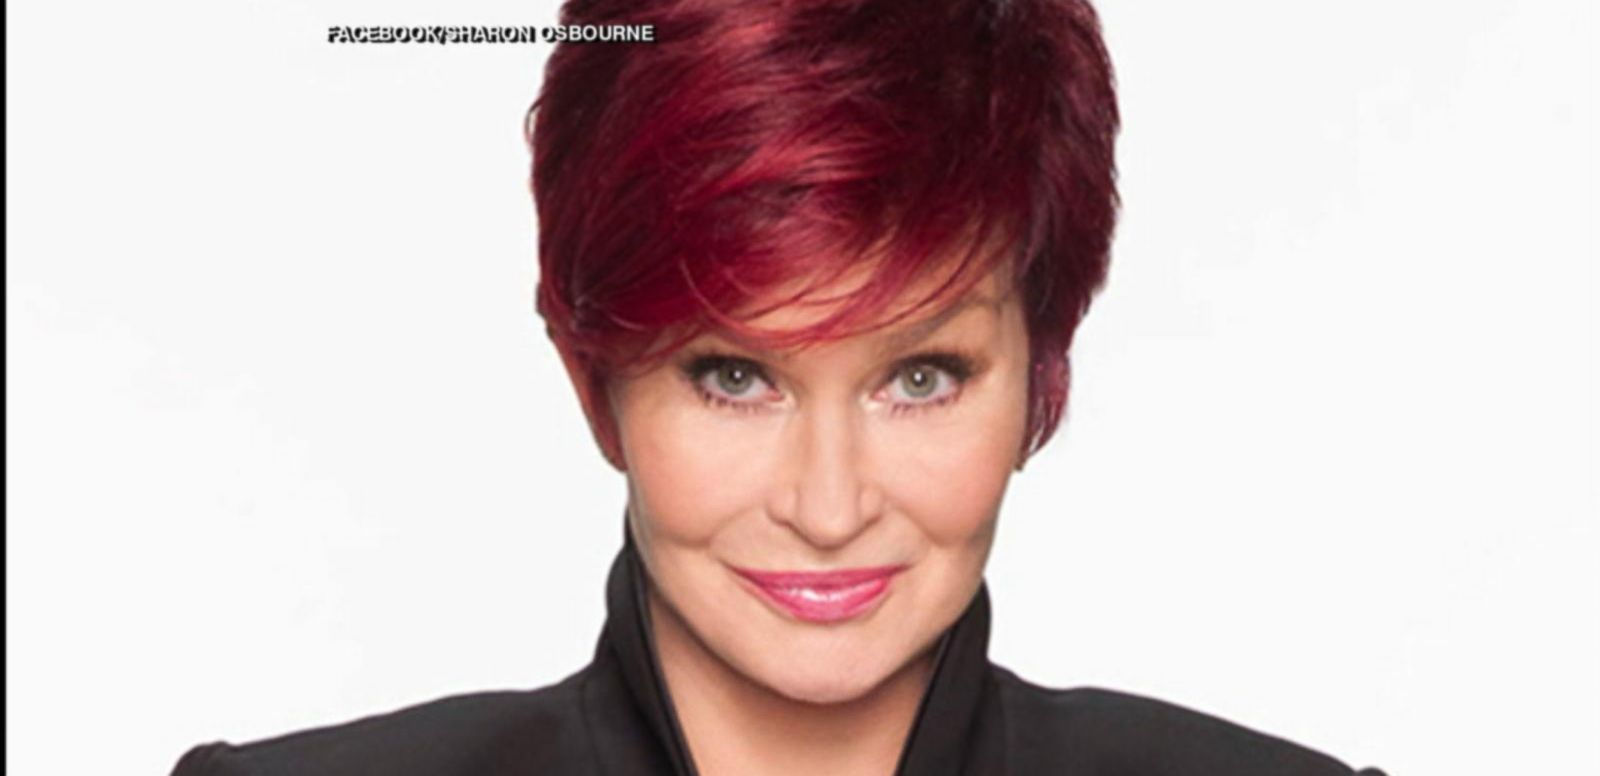 VIDEO: Index: Sharon Osbourne Takes a Month Off After Health Scare